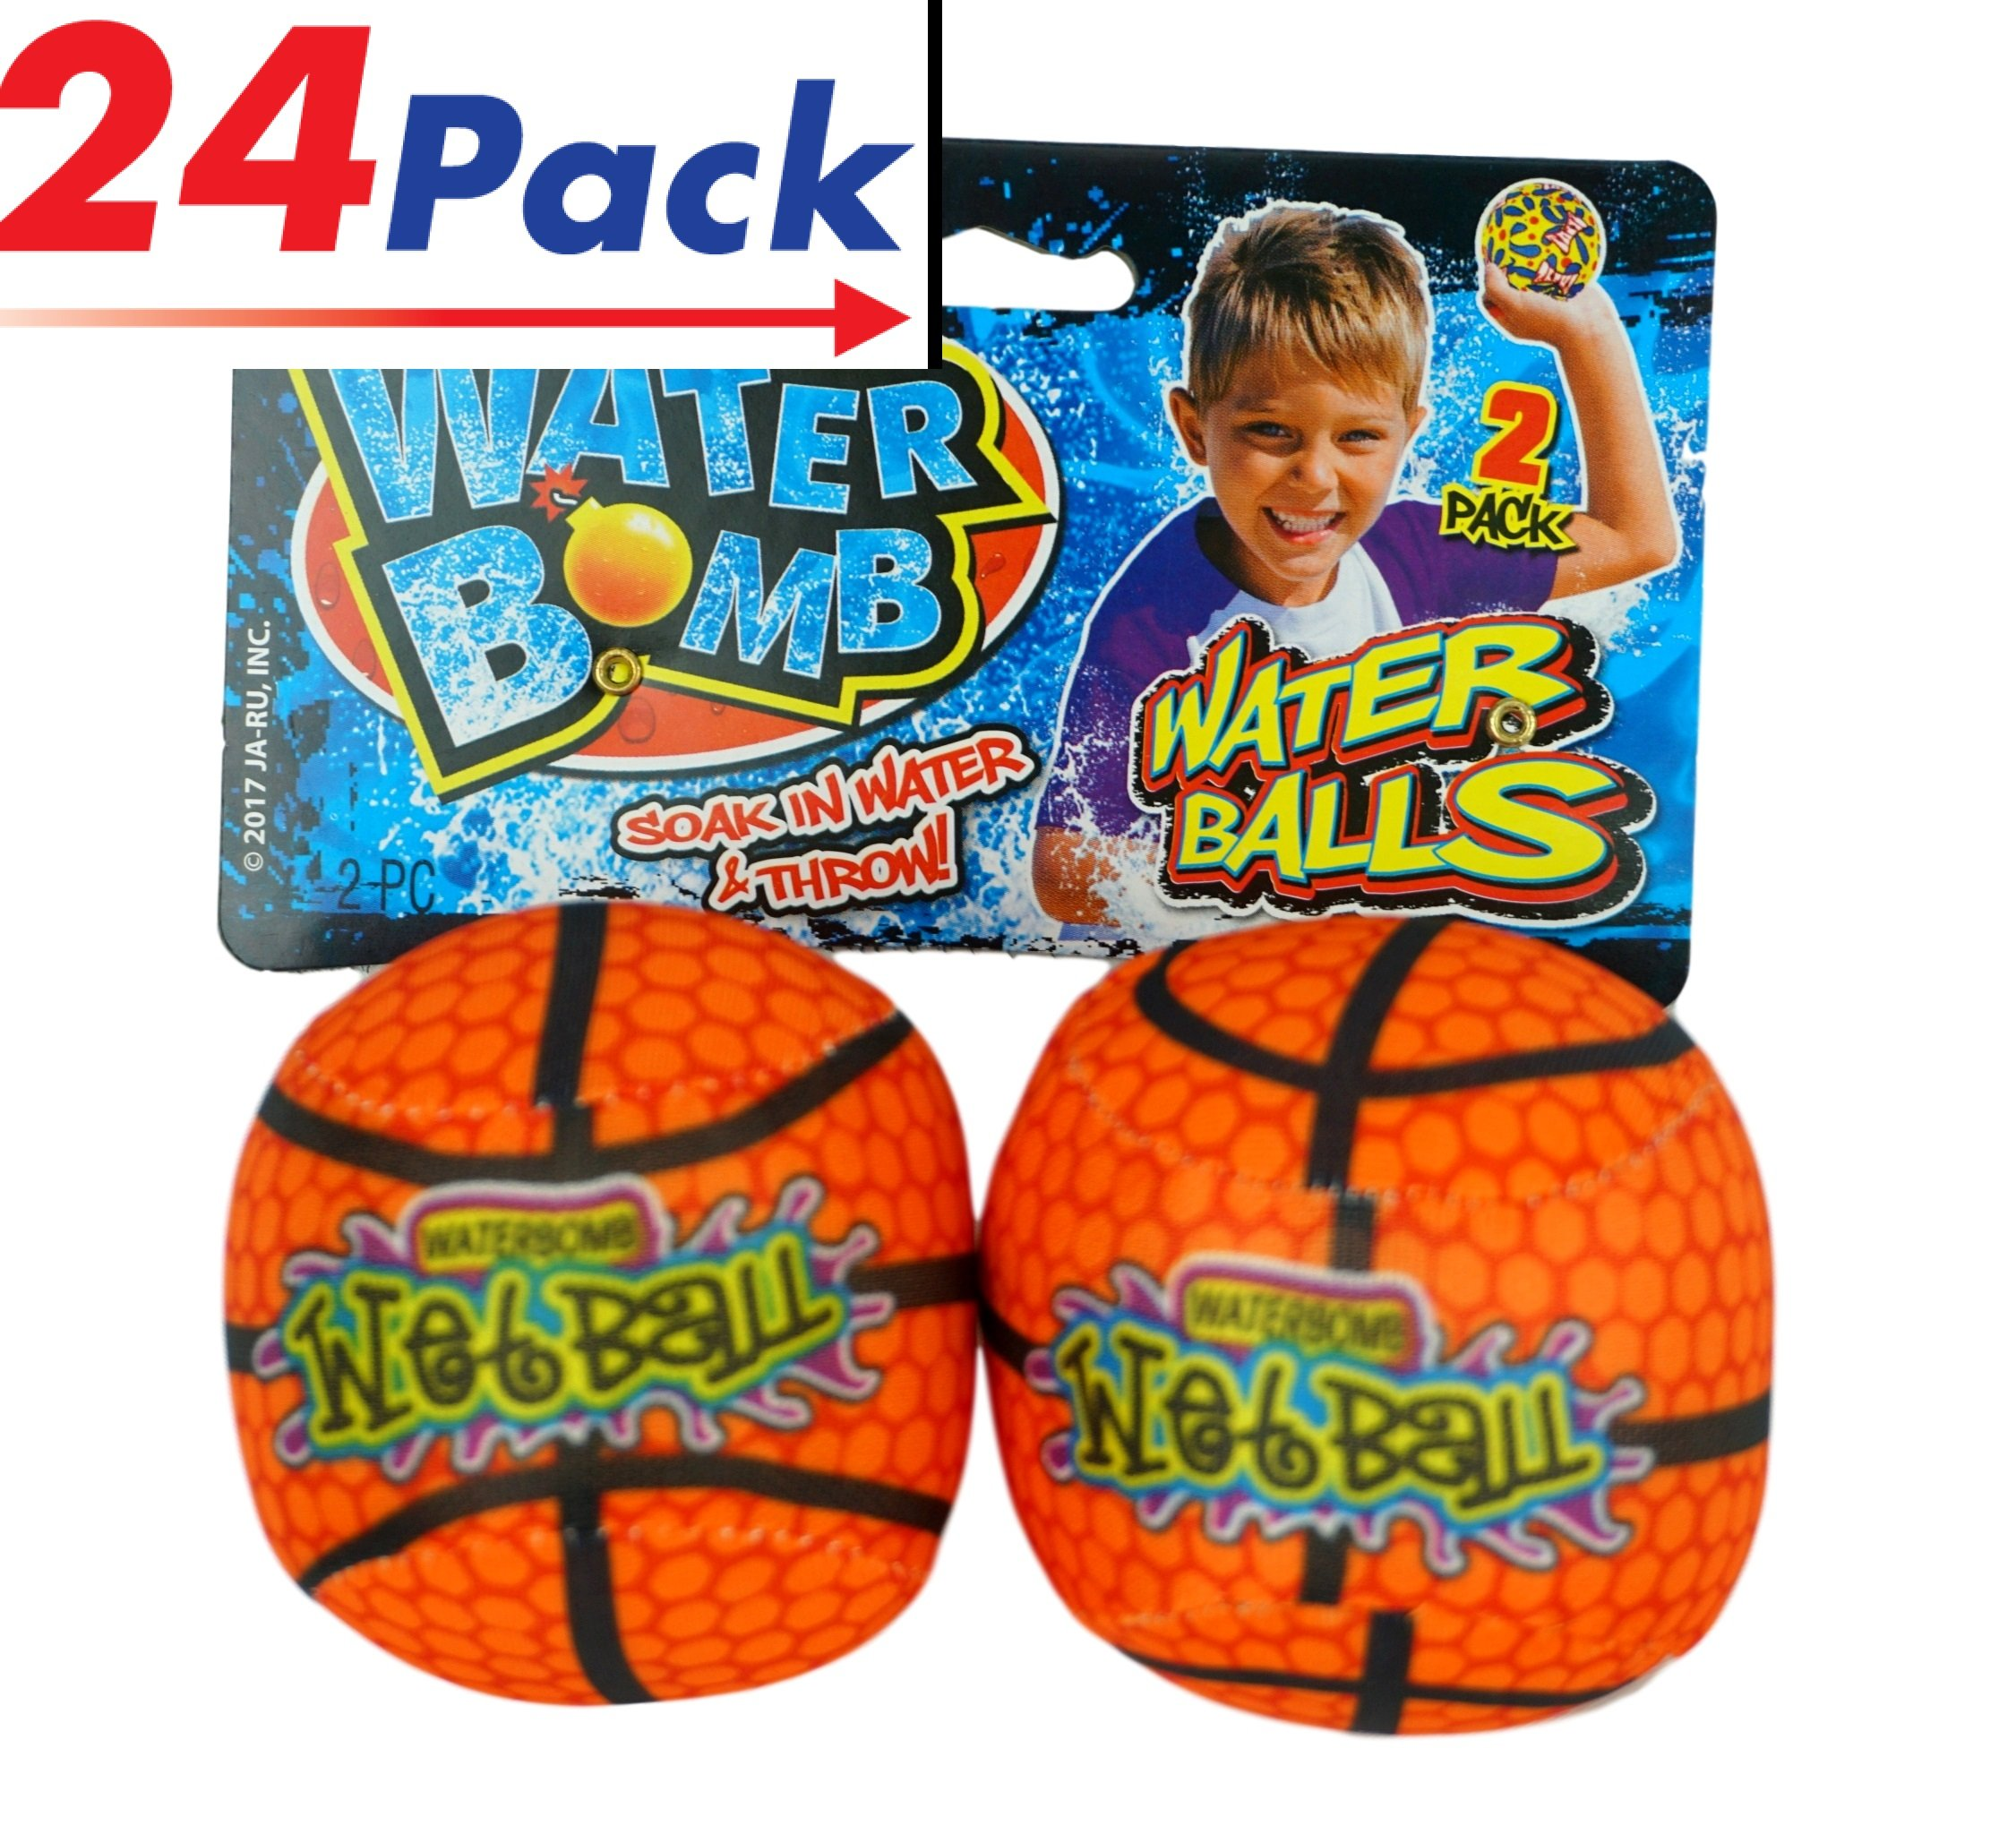 Water Spash Ball (24 Pairs) By JA-RU. Soak and Throw the Bomb. Like water Balloons but Better. | 149-24